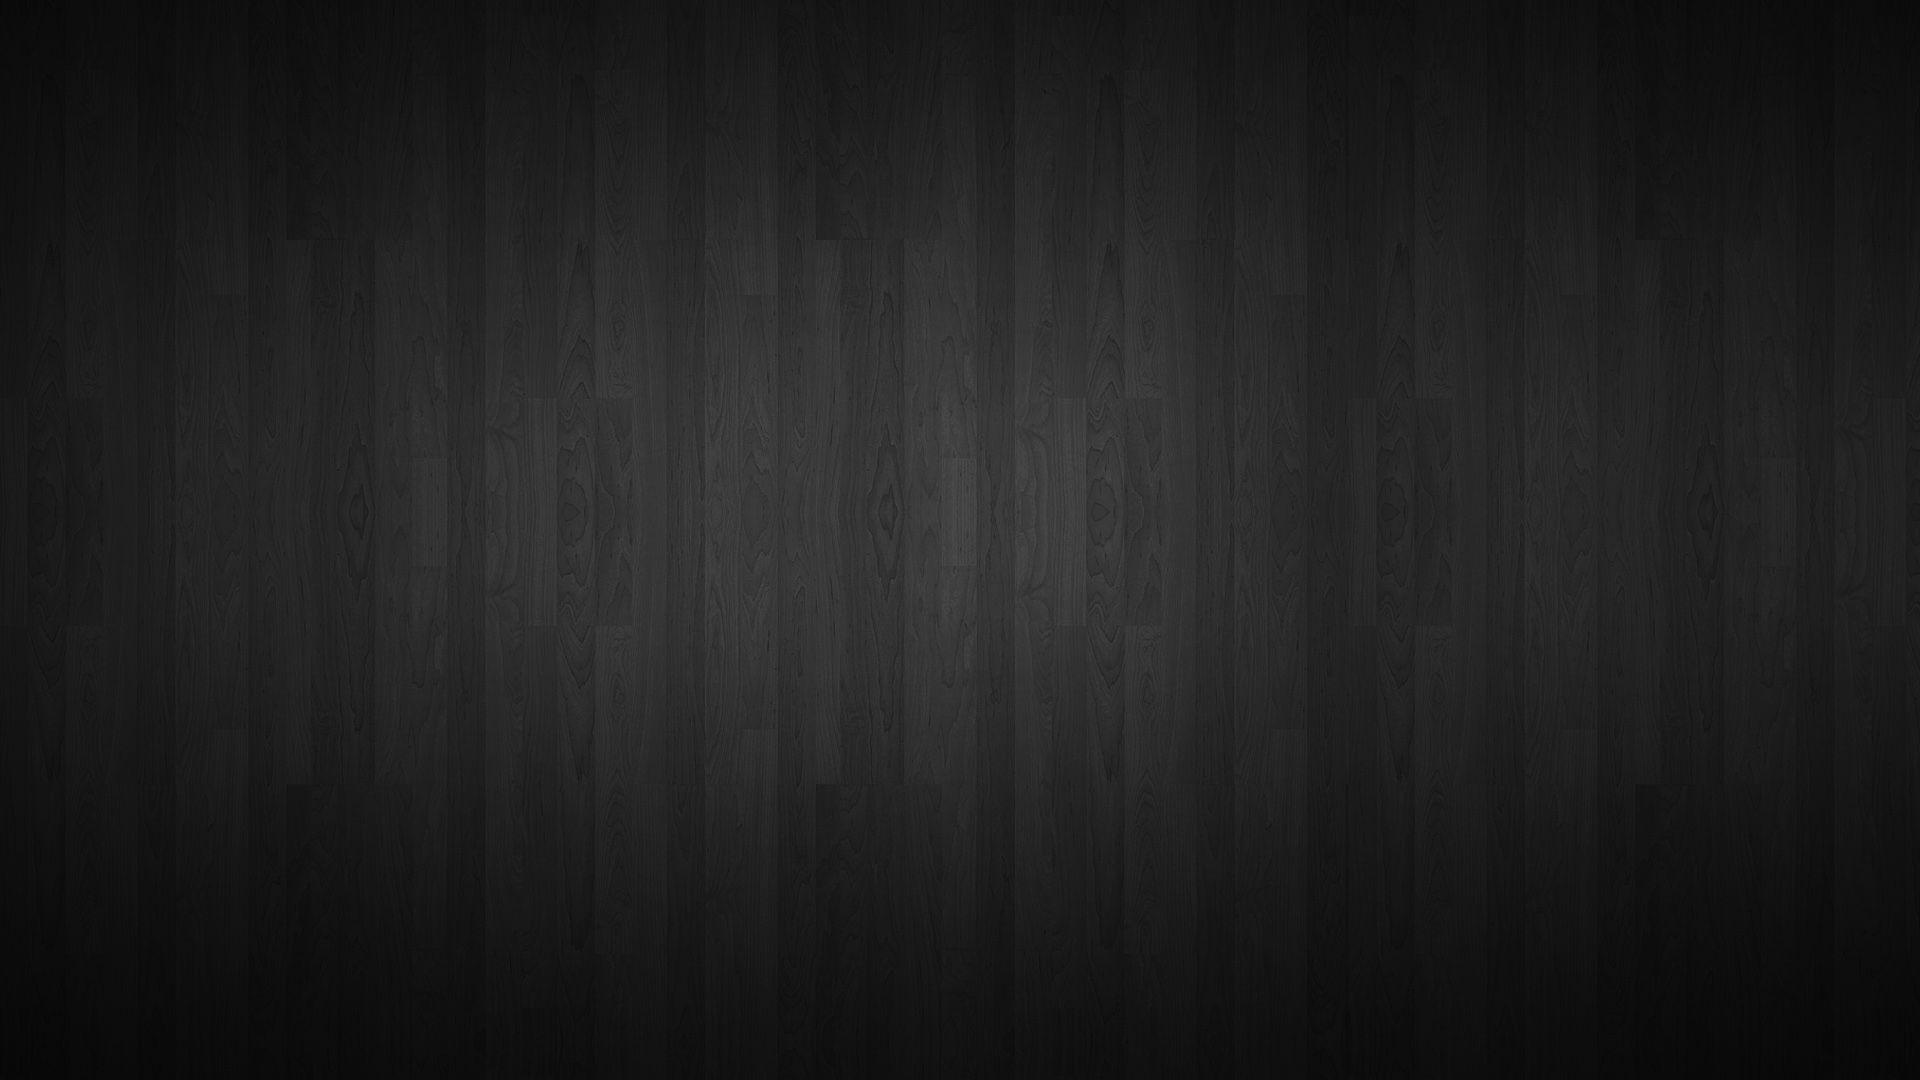 Wallpapers For > White Wood Grain Wallpapers